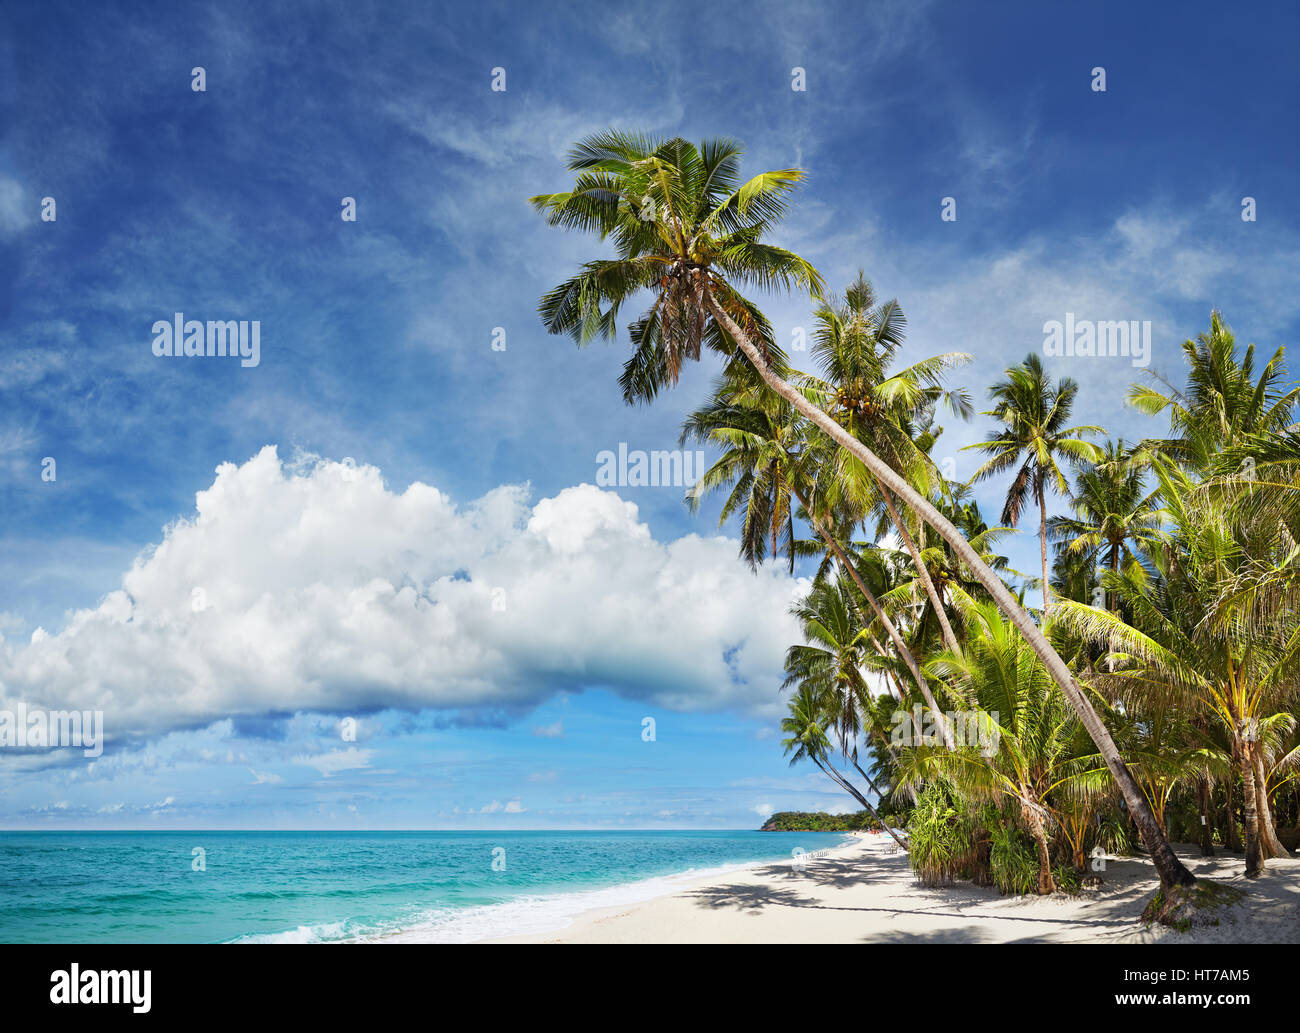 Tropical beach with palm trees and white sand - Stock Image